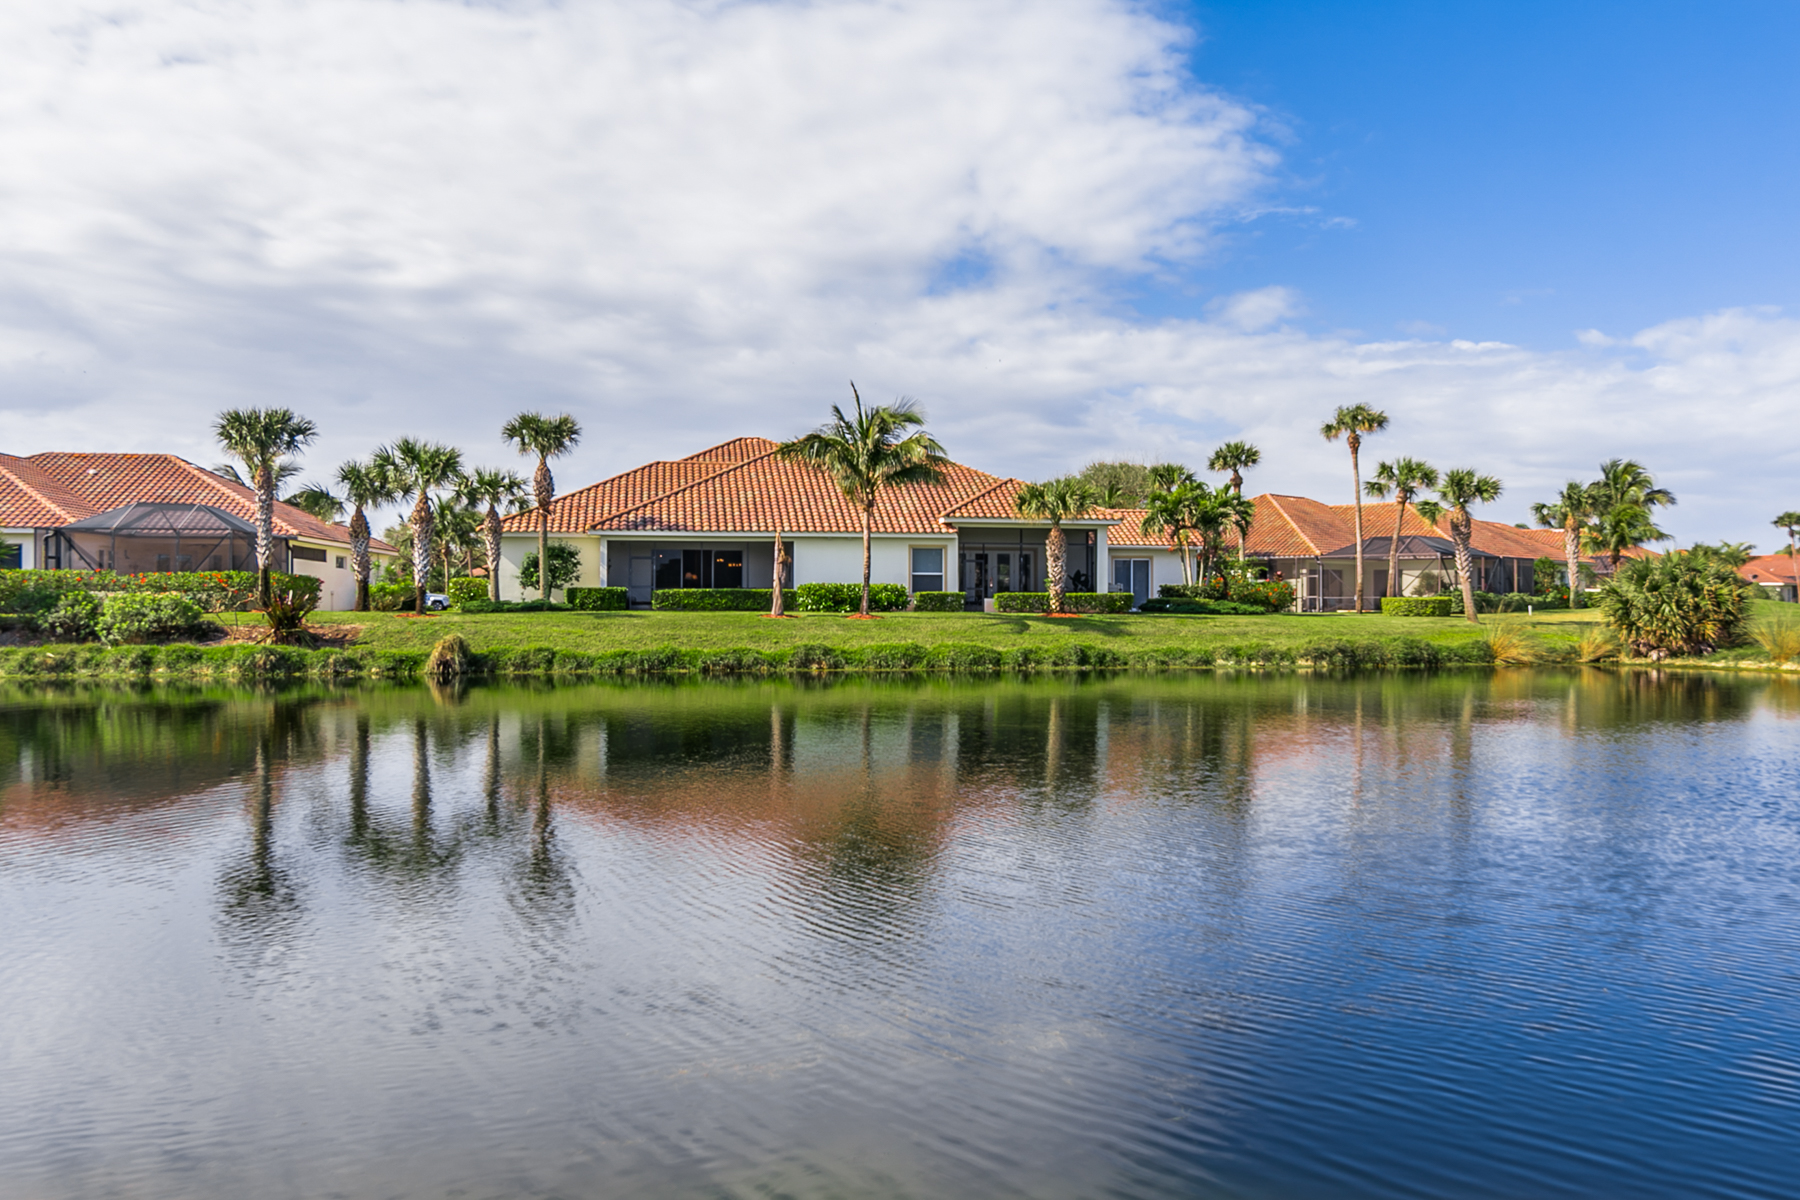 4 Bed/3.5 Bath Lakefront w Pool